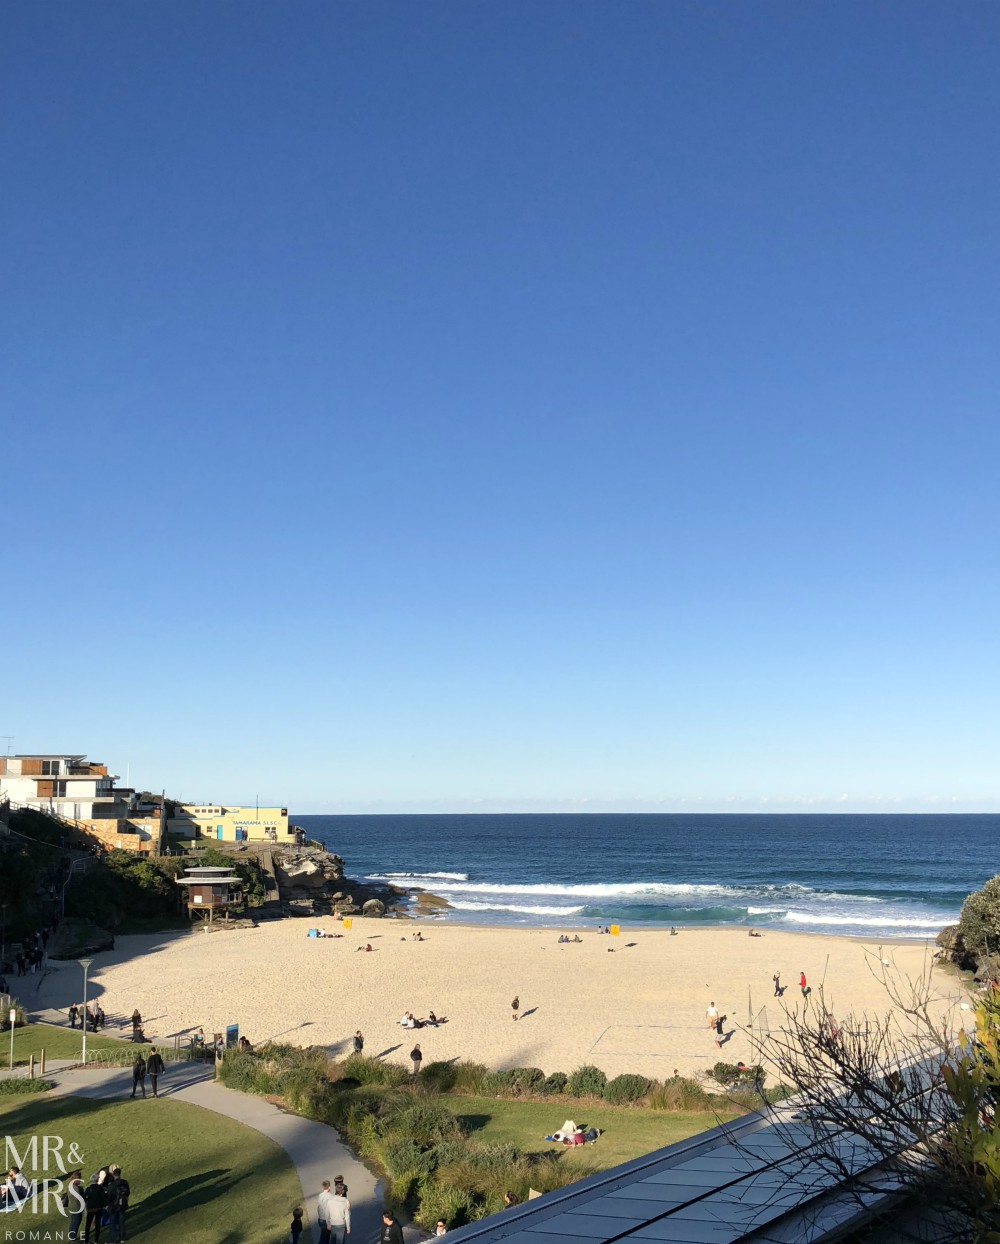 How to come home after a long journey - Mr & Mrs Romance - Tamarama